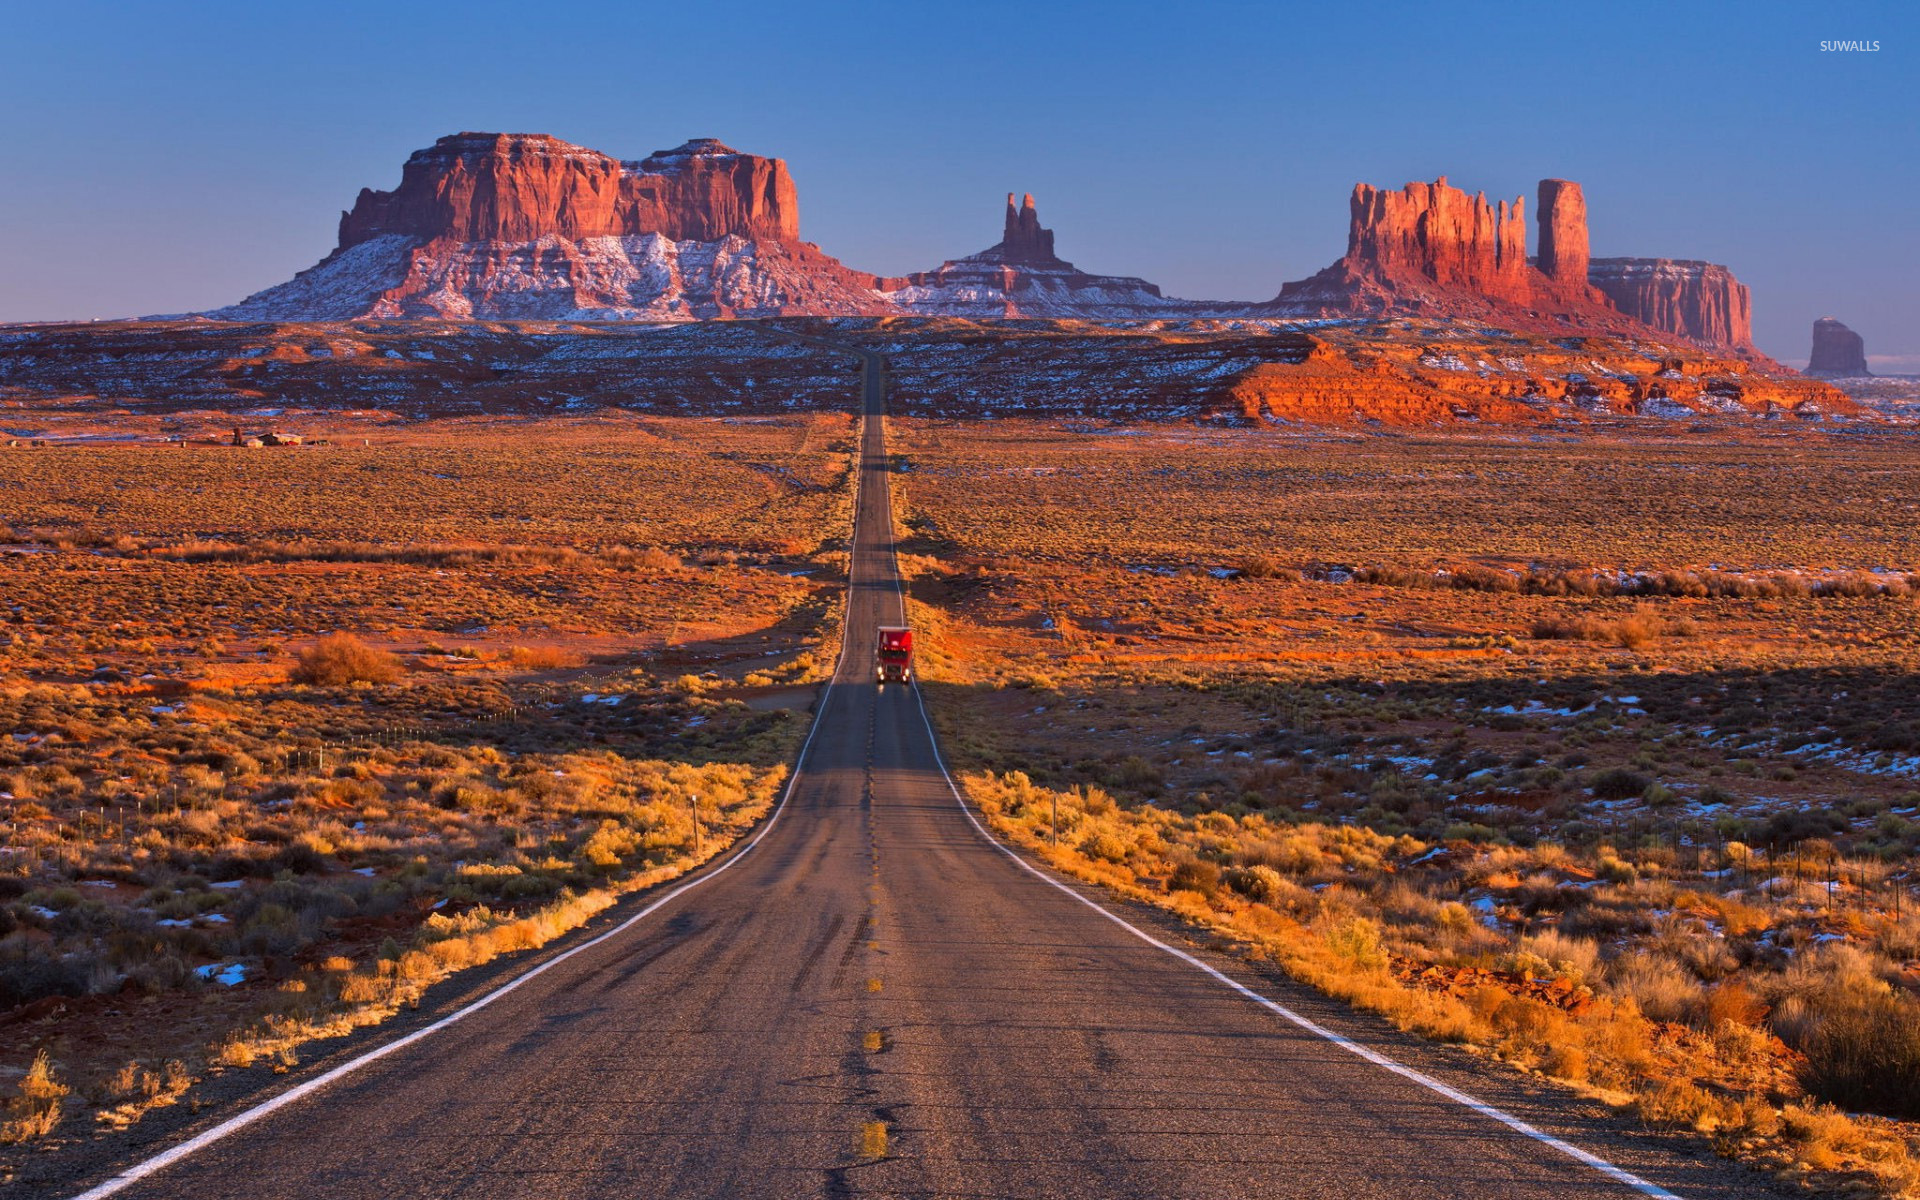 monument valley 7 wallpaper nature wallpapers 47700